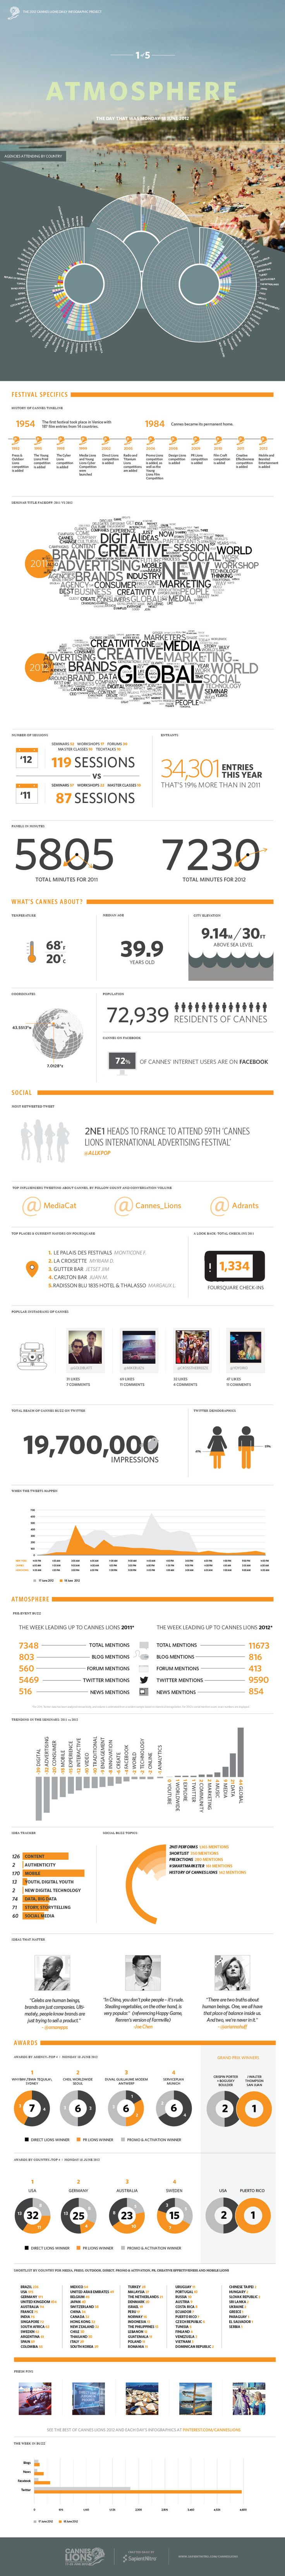 2012 Cannes Lions Daily Infographic Project: Monday June 18. Created daily by @SapientNitro -